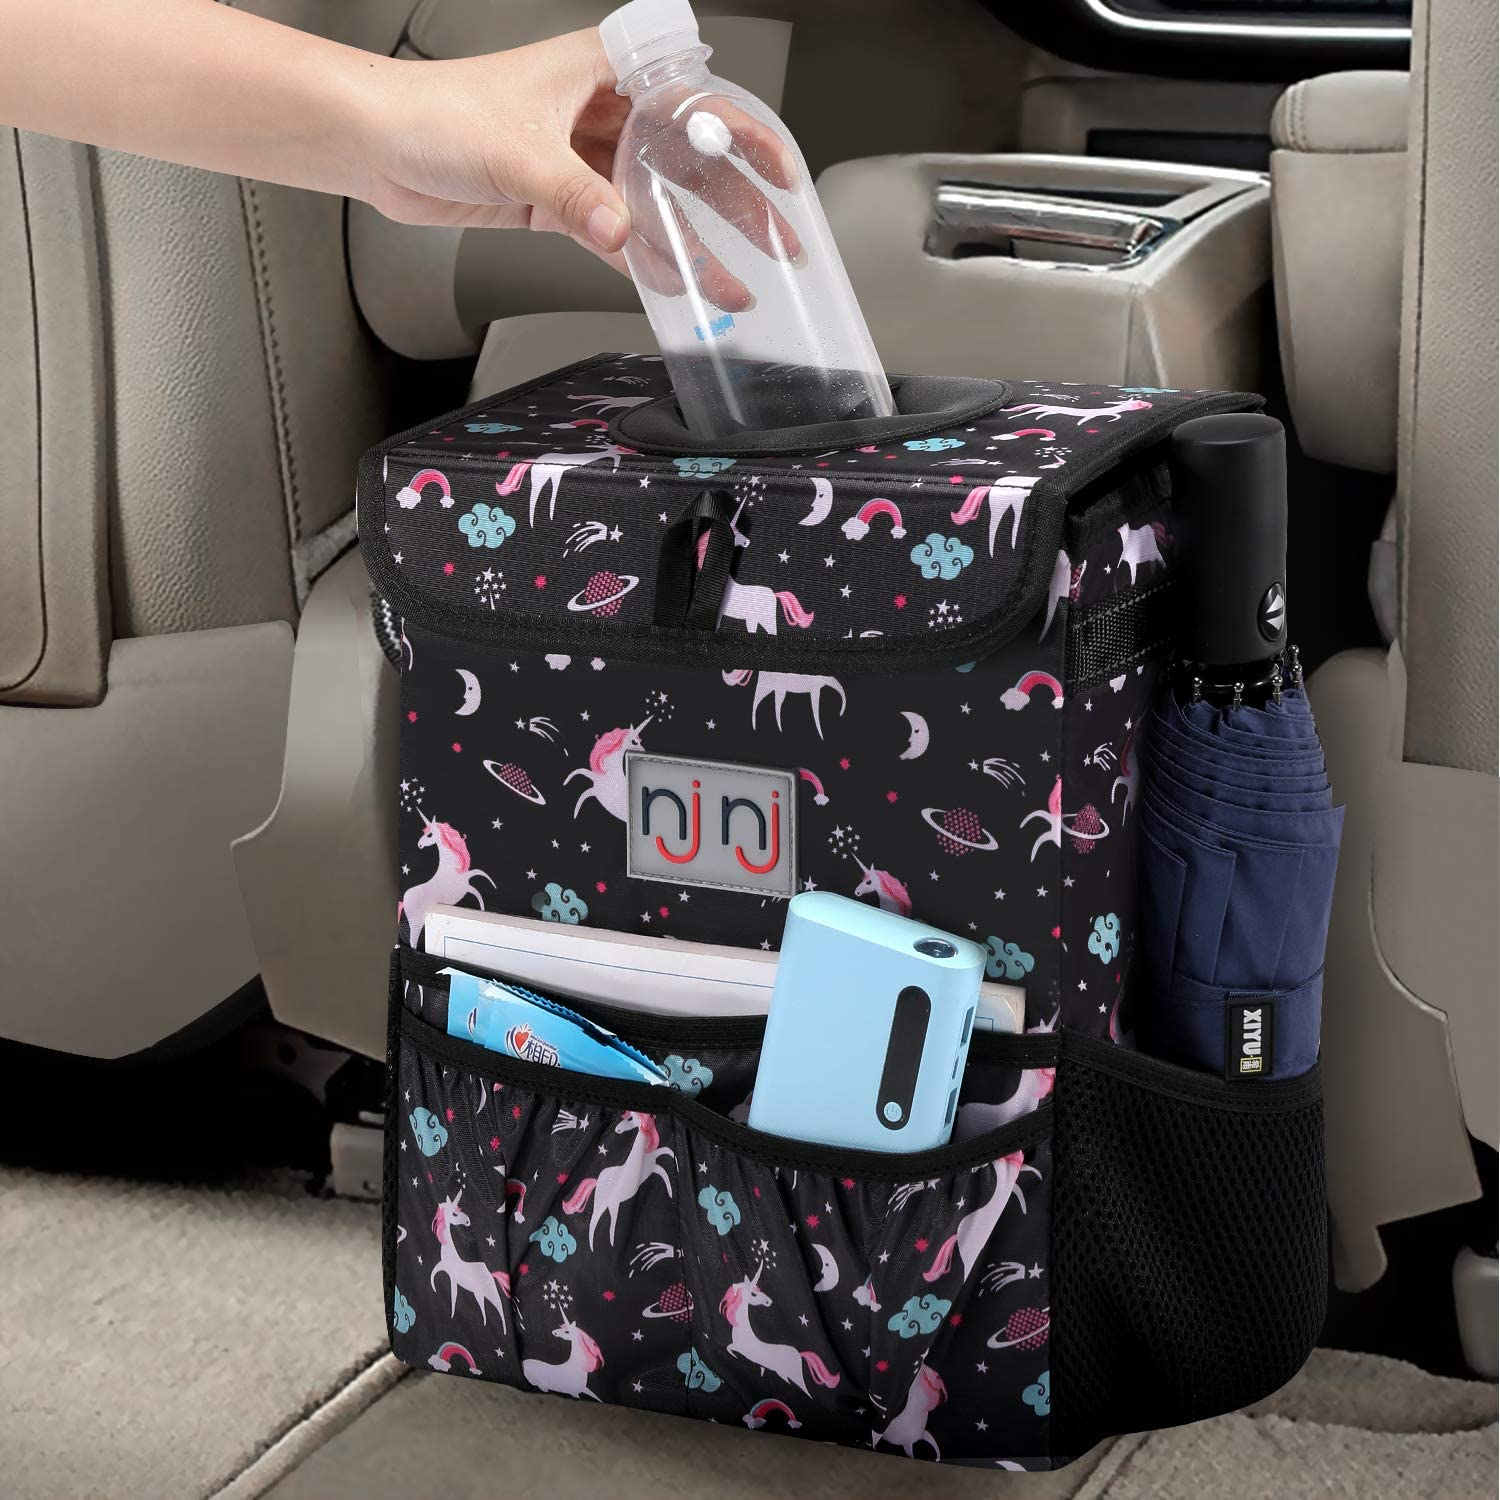 Stash Away Car Trash Can With Lid Storage Pockets Vehicle Neat Organiser Pouch